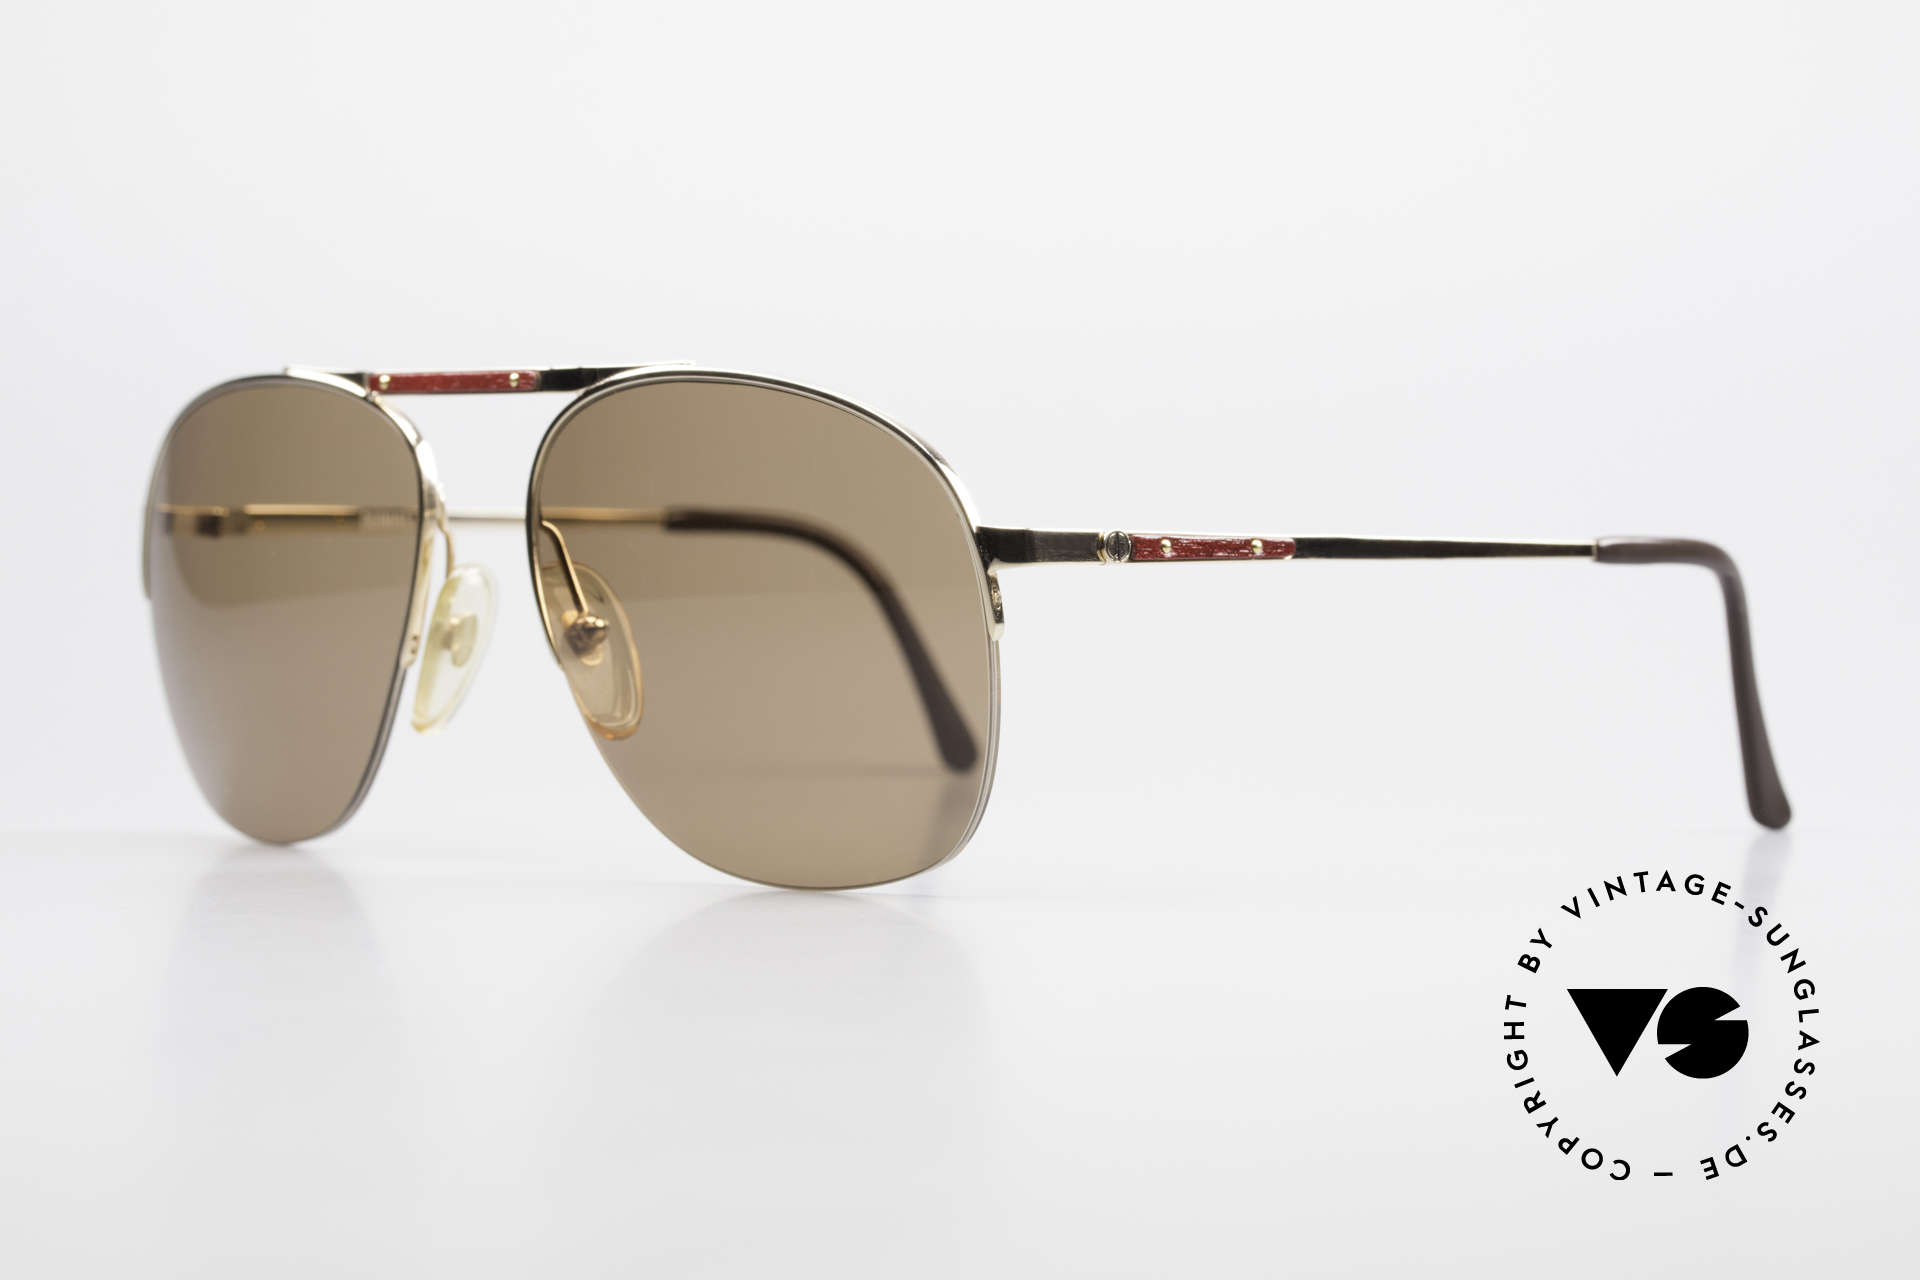 Dunhill 6022 80's Gentlemen's Sunglasses, GOLD-PLATED frame with root wood (briar) appliqué, Made for Men